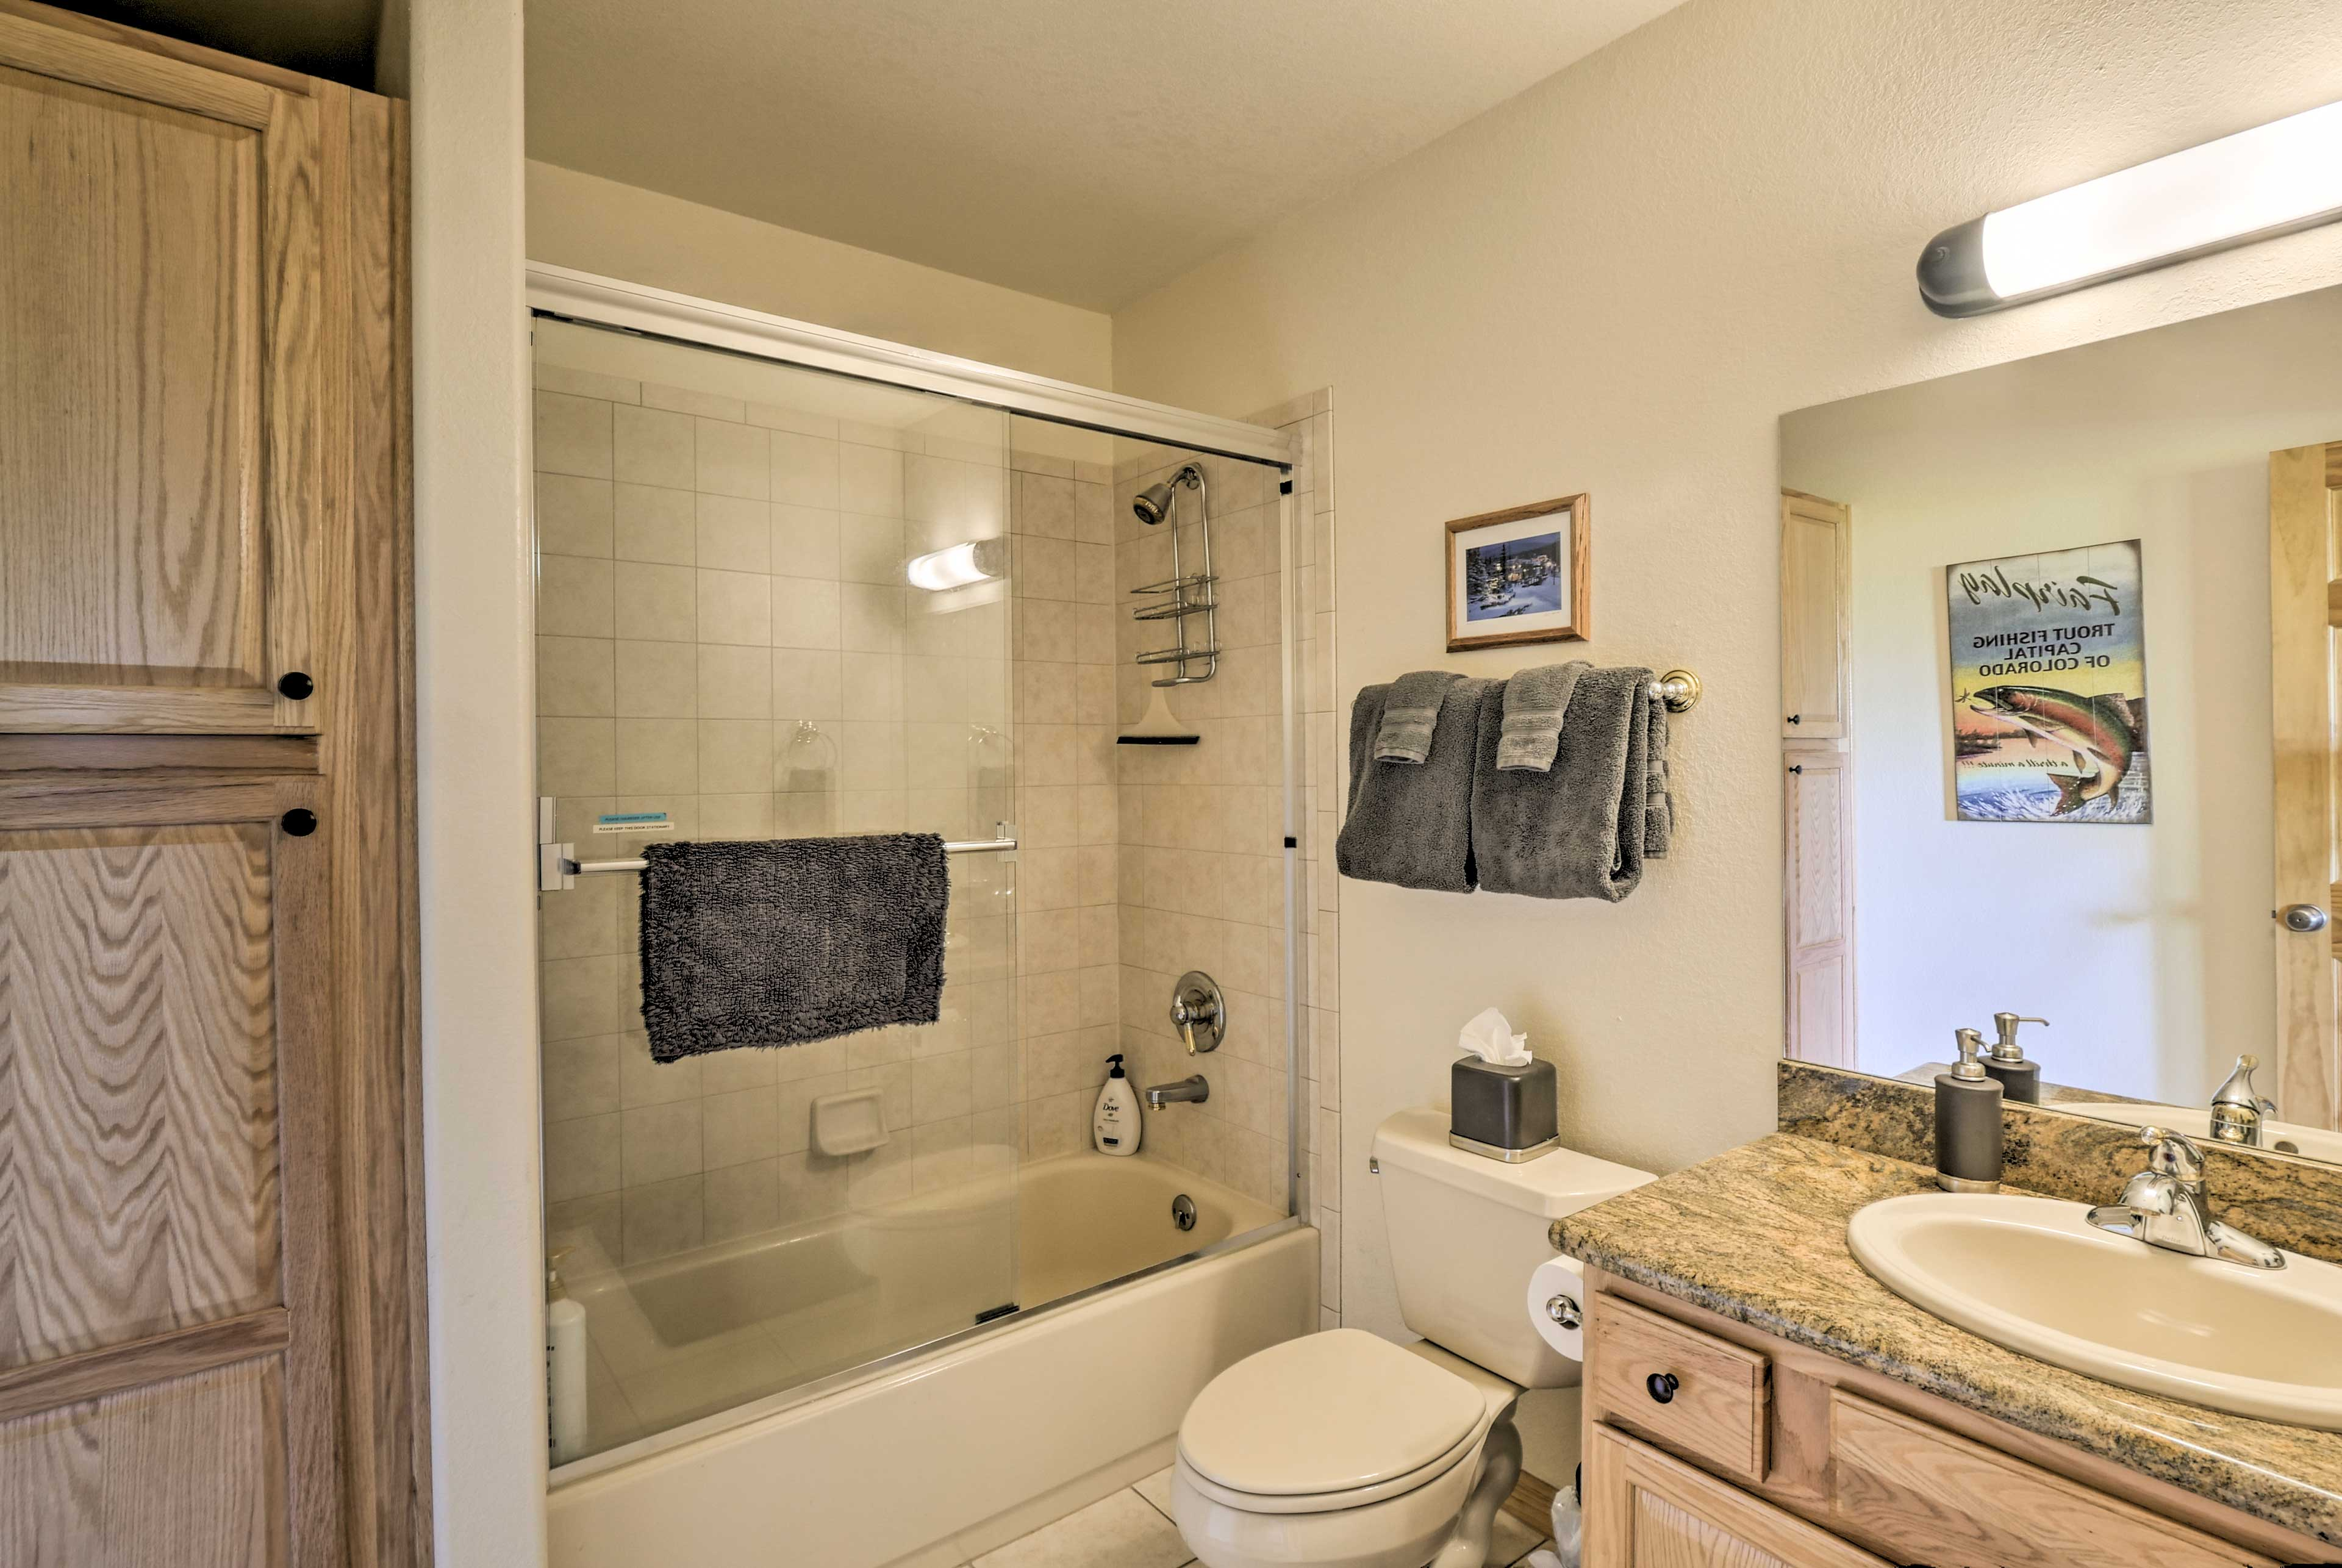 Wash up before another adventure-filled day in the shower/tub combo.